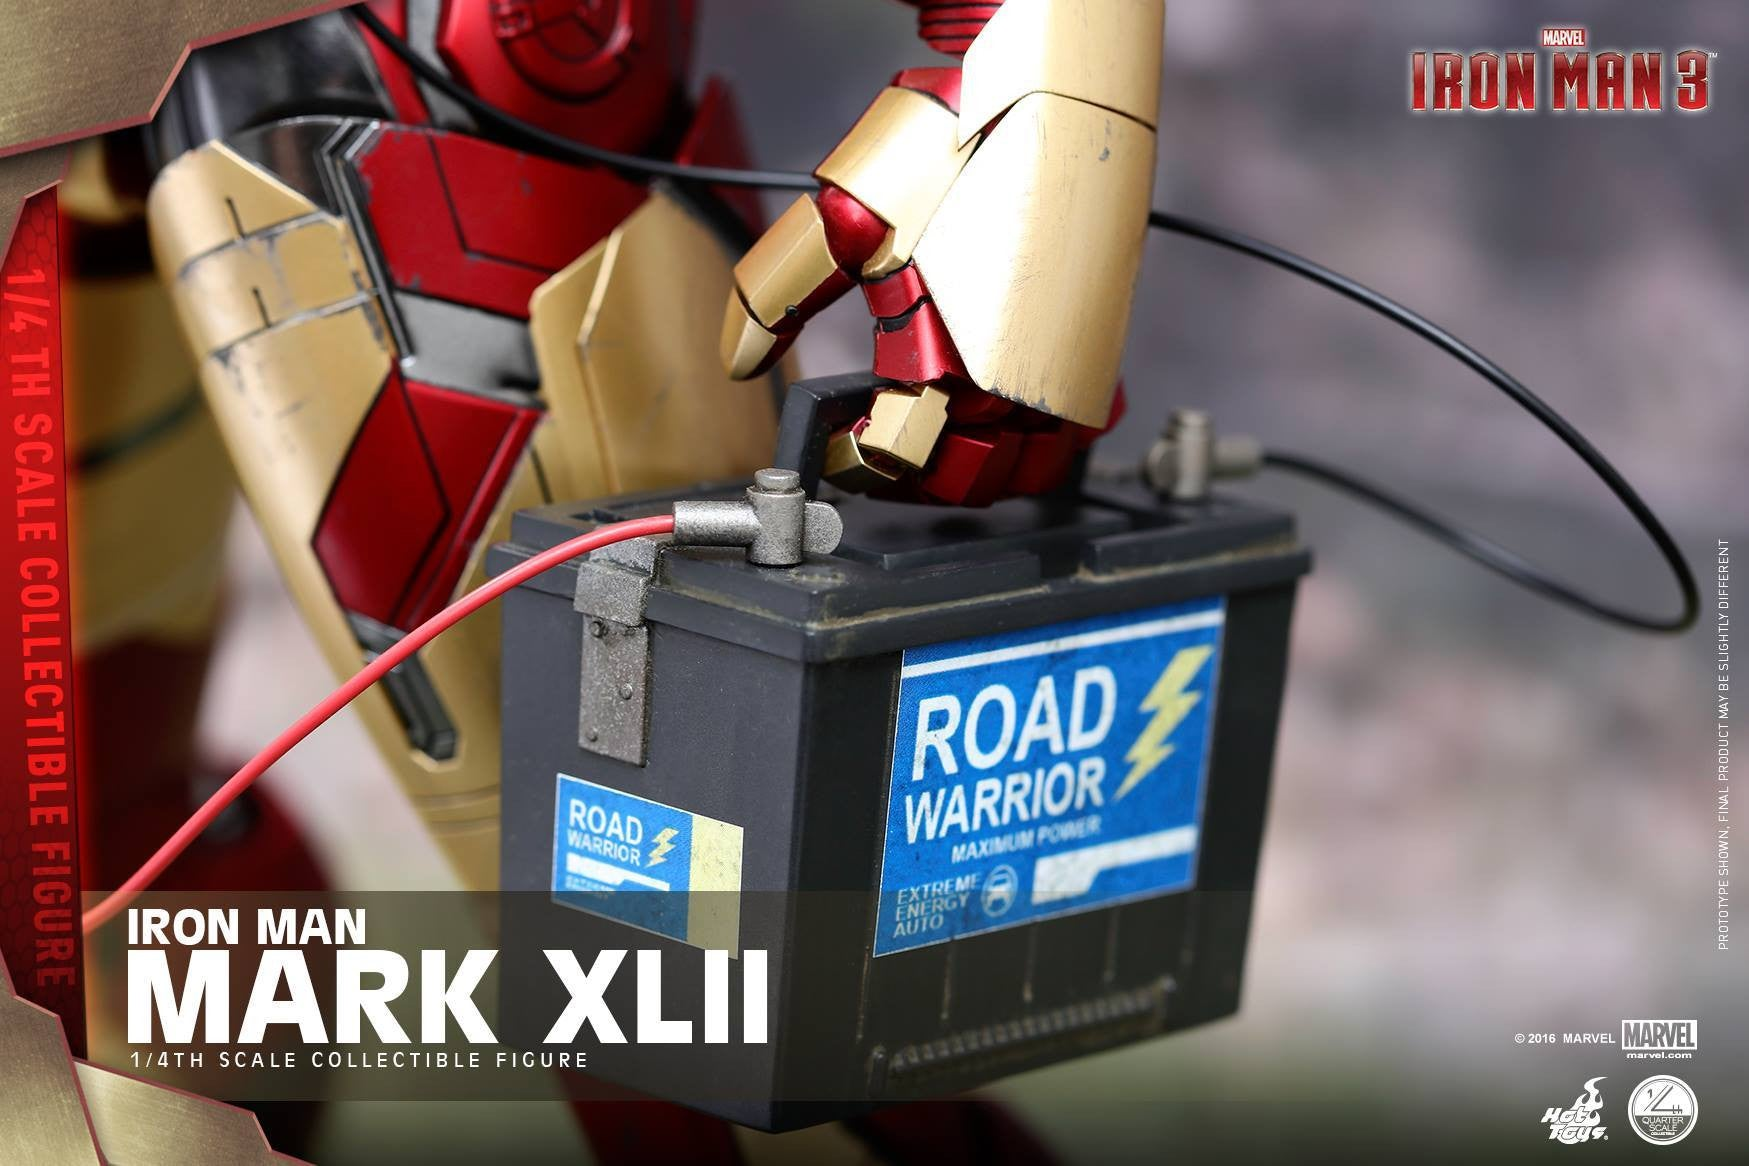 Hot Toys - QS007 - Iron Man 3 - 1/4th scale Mark XLII - Marvelous Toys - 7